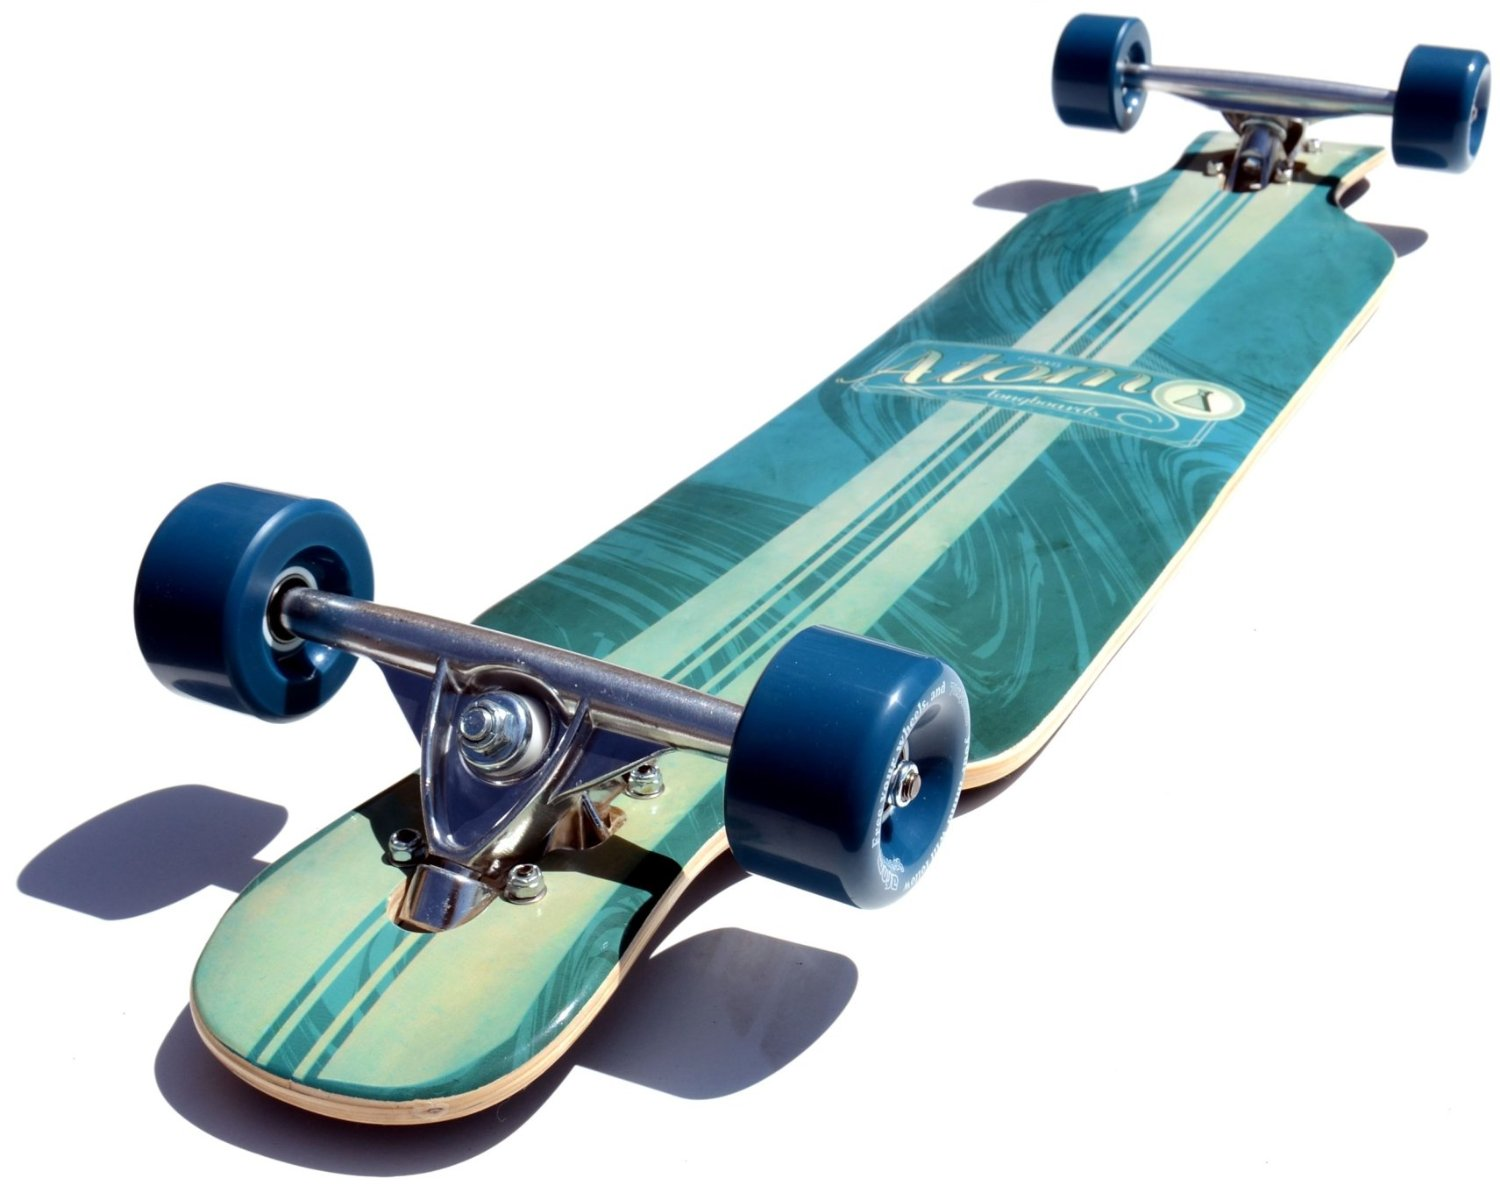 The Atom drop kick longboard 39